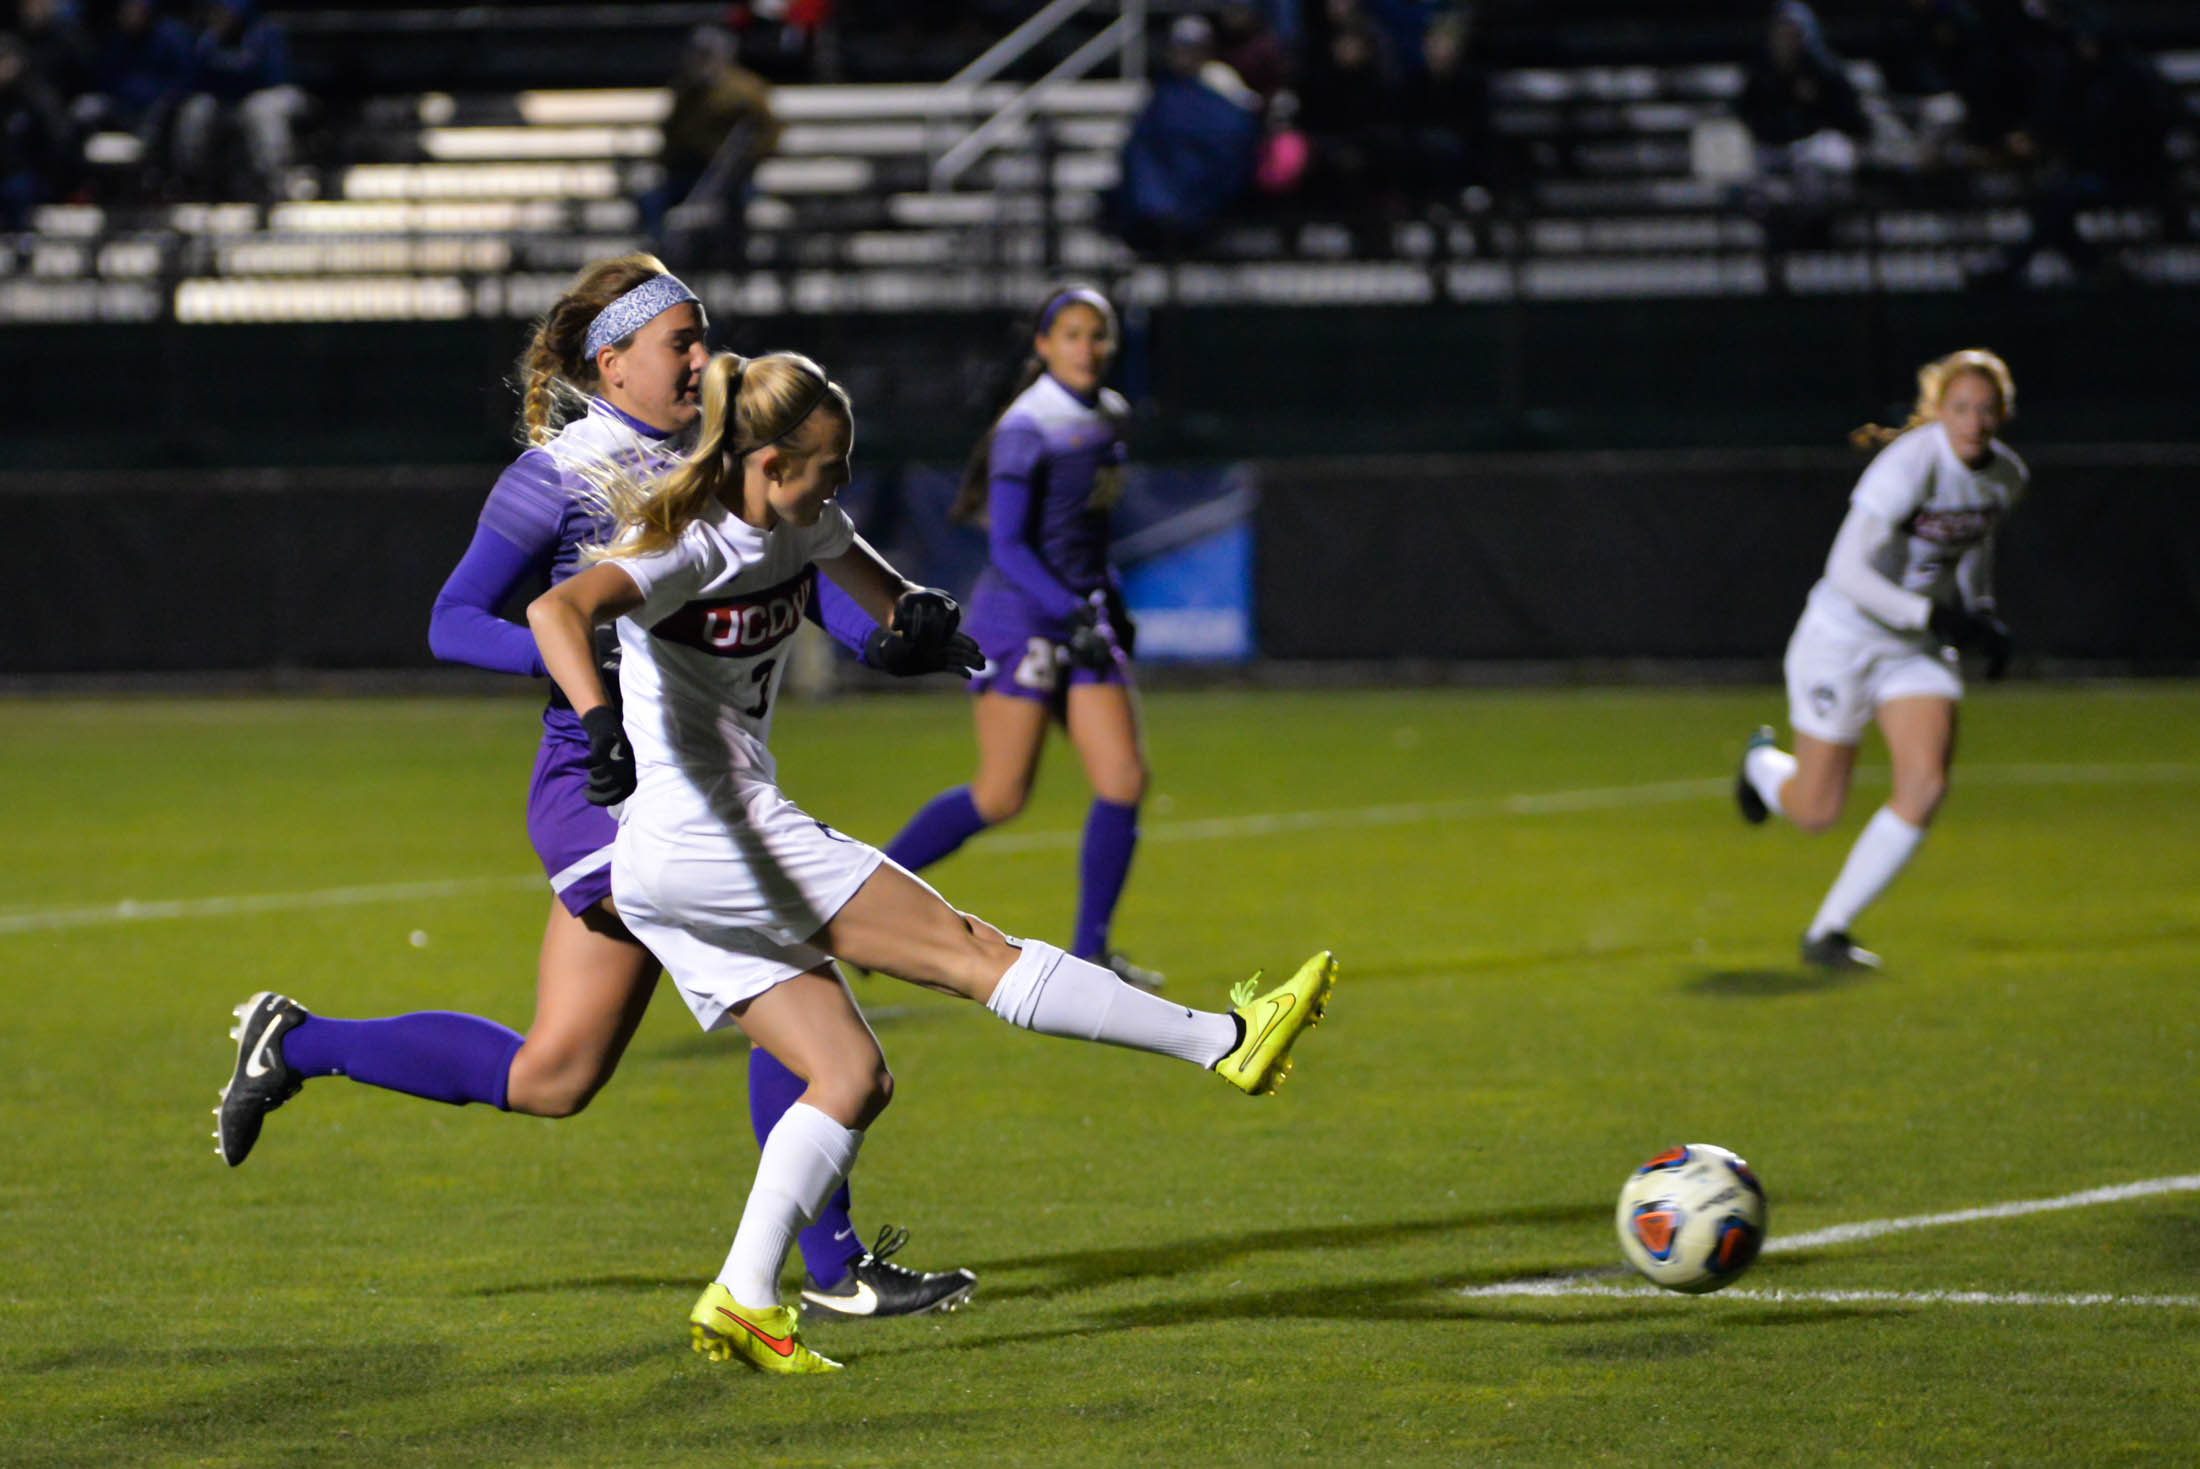 Senior midfielder Rachel Hill (3) drives in a goal during the Huskies 4-2 victory over the Great Danes during the first round of the NCAA tournament at Morrone Stadium on Saturday, Nov. 12, 2016. The goal was Hill's 16 of the season. (Amar Batra/The Daily Campus)